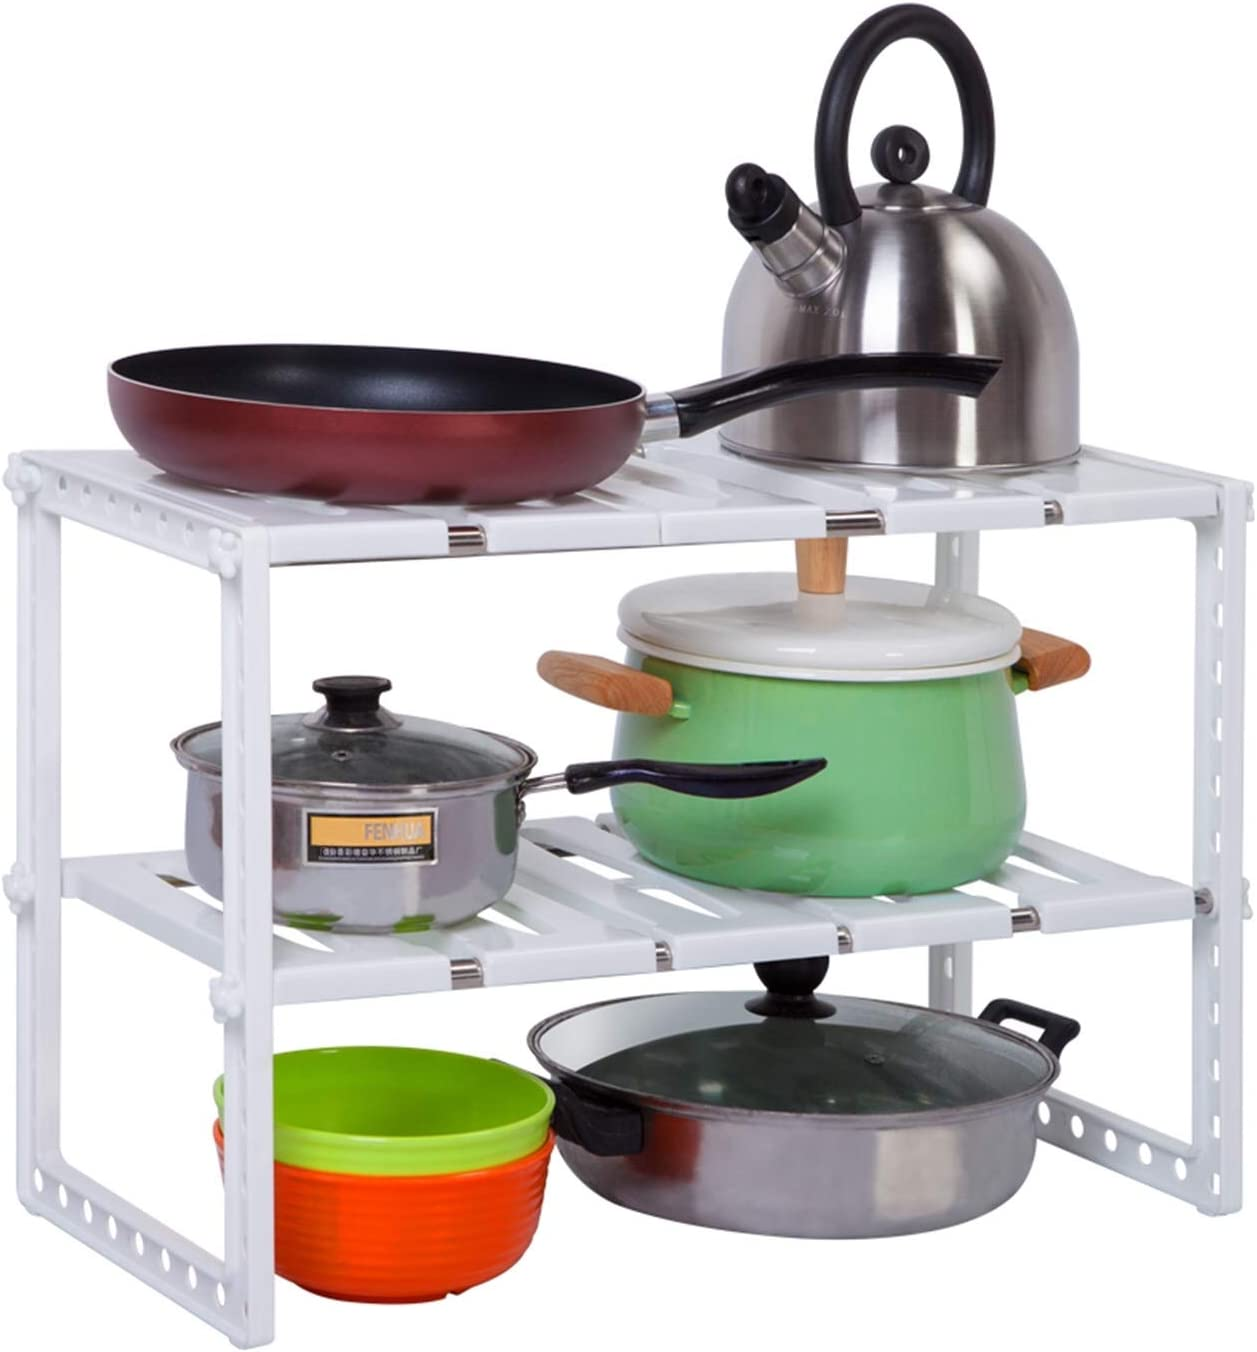 Nother Under Sink Detroit Mall Organizers and storage Rack Pot Japan's largest assortment - with 2-Tier